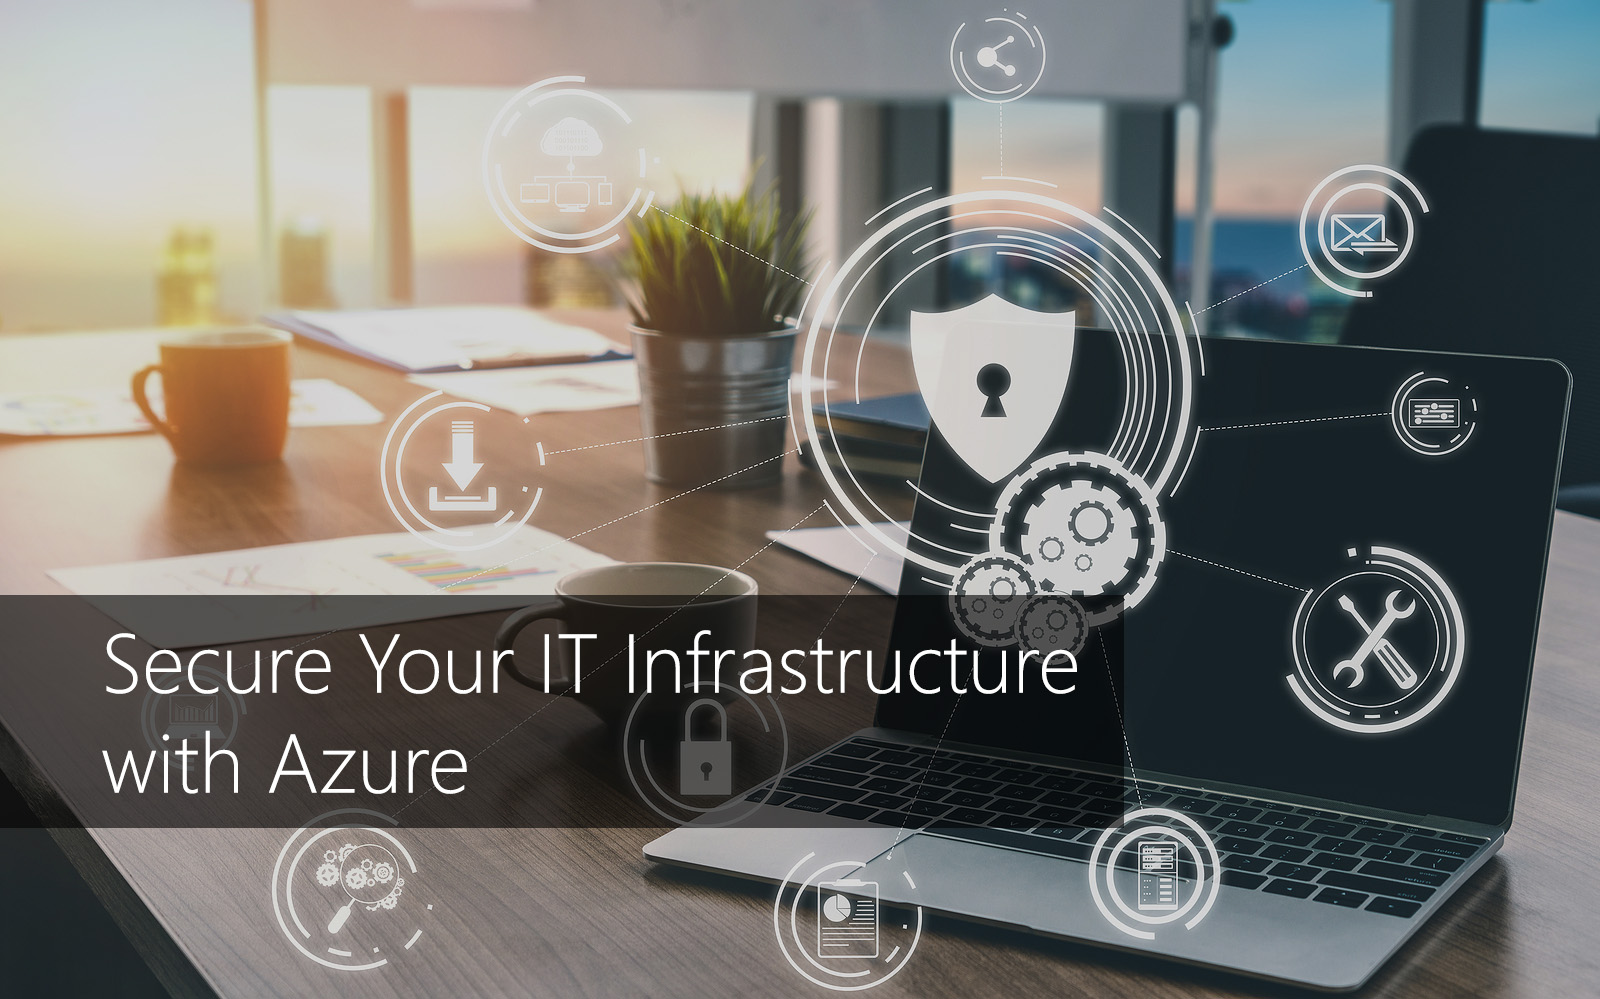 Secure Your IT Infrastructure with Azure